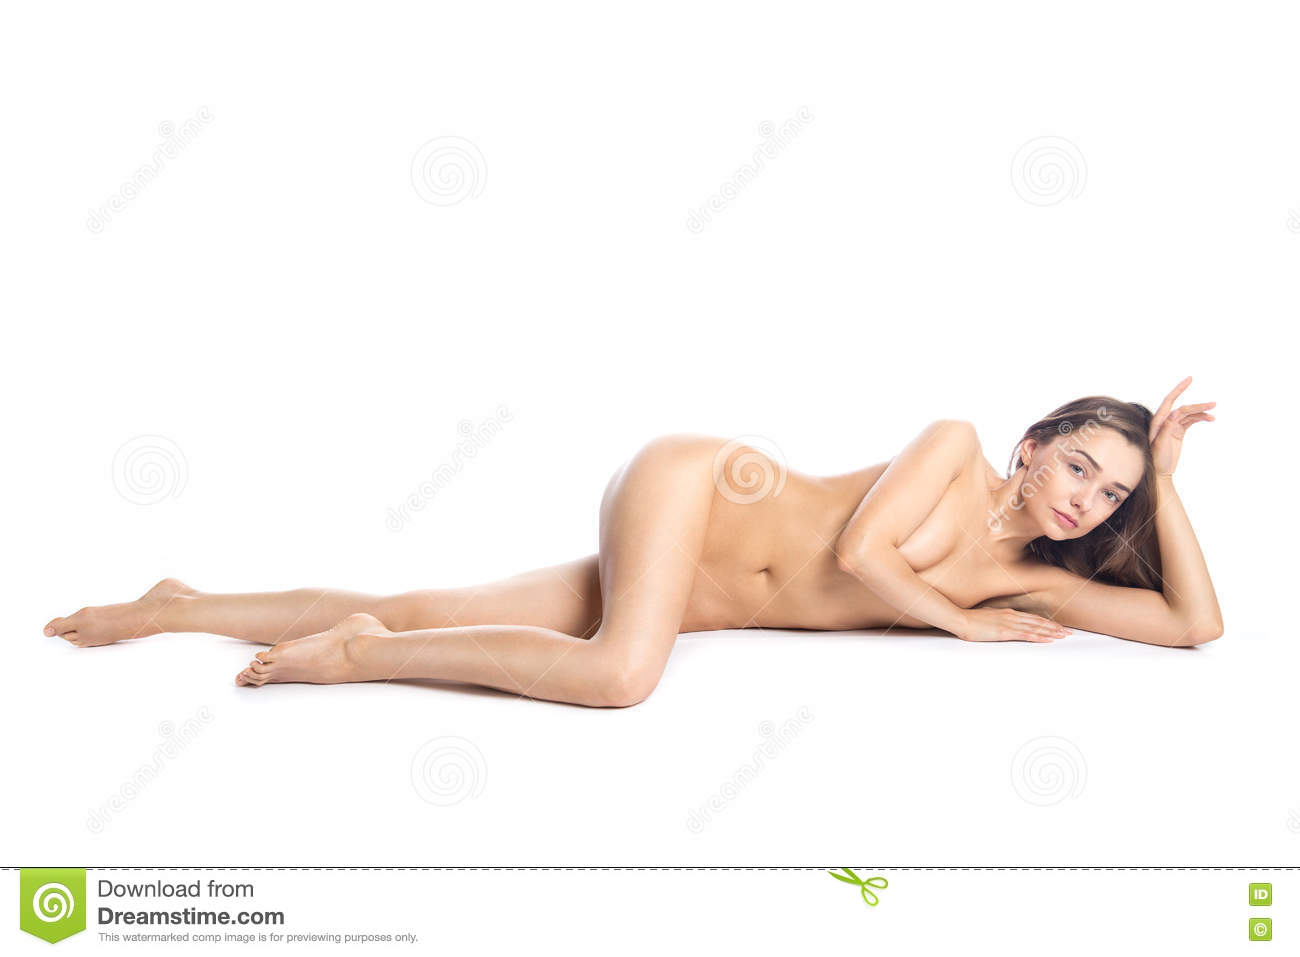 Hot nude girl with bass fish